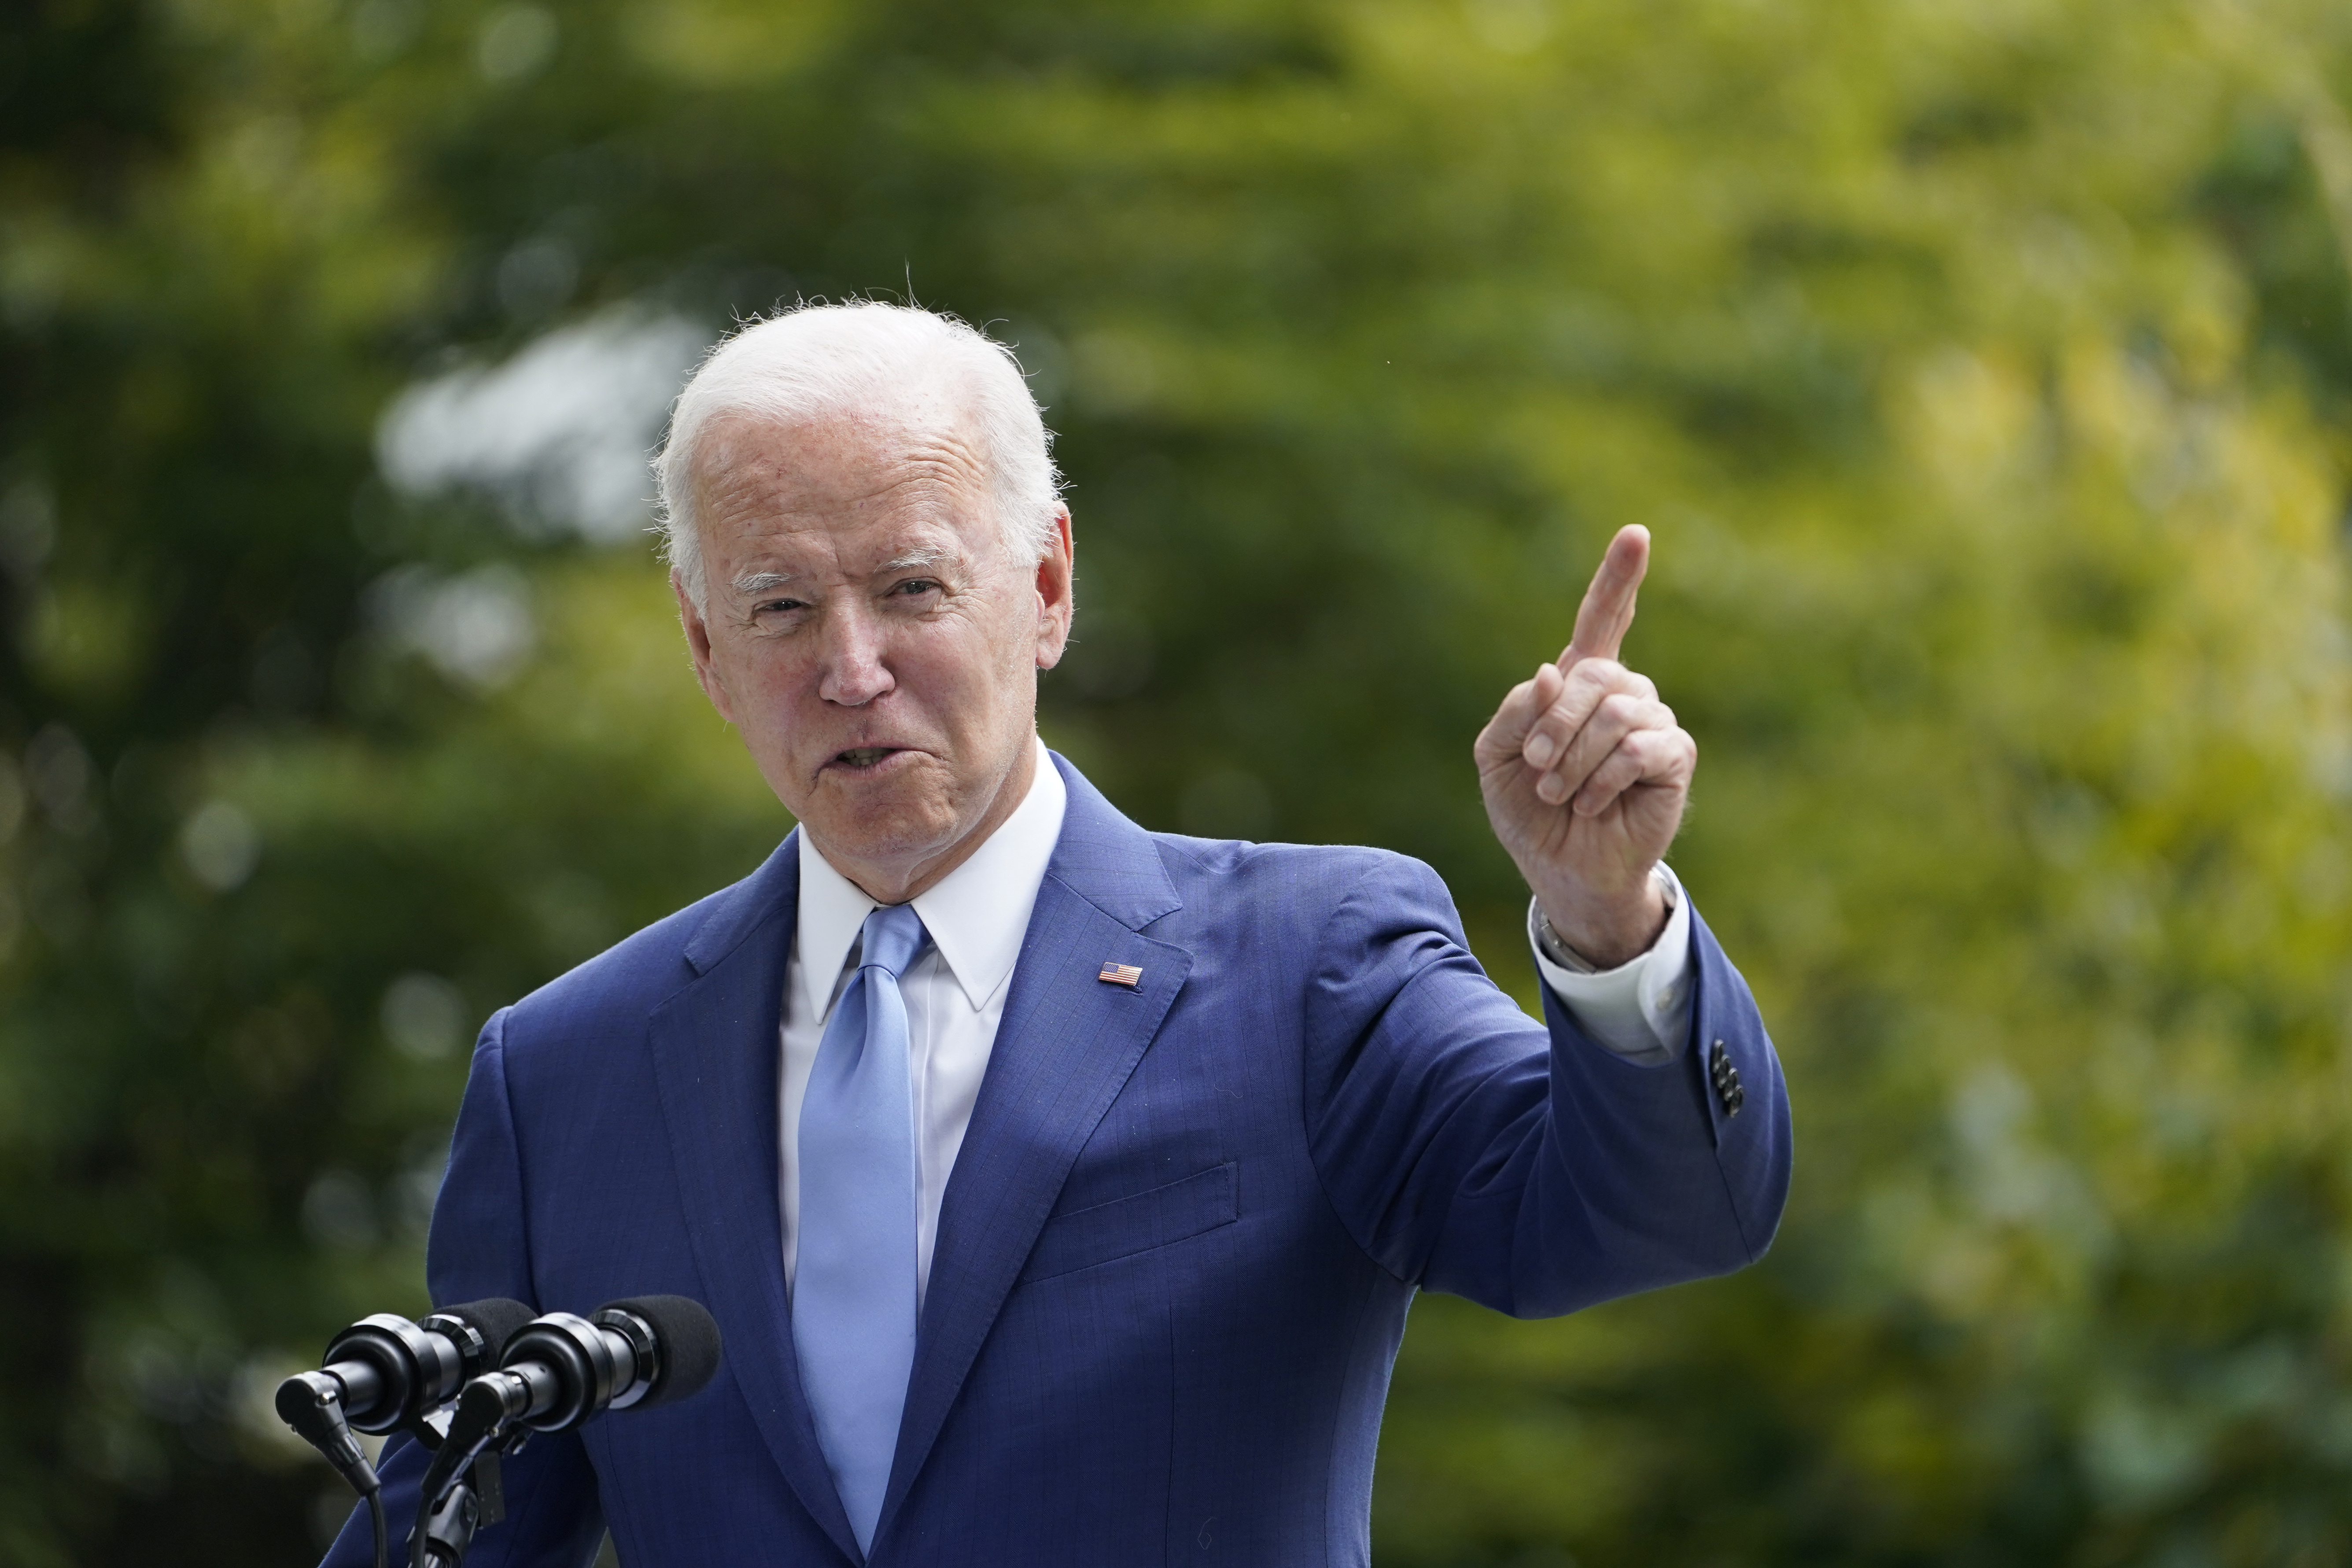 President Joe Biden speaks outside the White House in Washington on Friday, Oct. 8, 2021. Biden's honeymoon period came to an end this summer, due, in part, to the rise of the delta variant and a chaotic U.S. exit from Afghanistan. But even as new reported COVID-19 cases and hospitalizations fall and attention on Afghanistan fades, his approval rating hasn't bounced back.